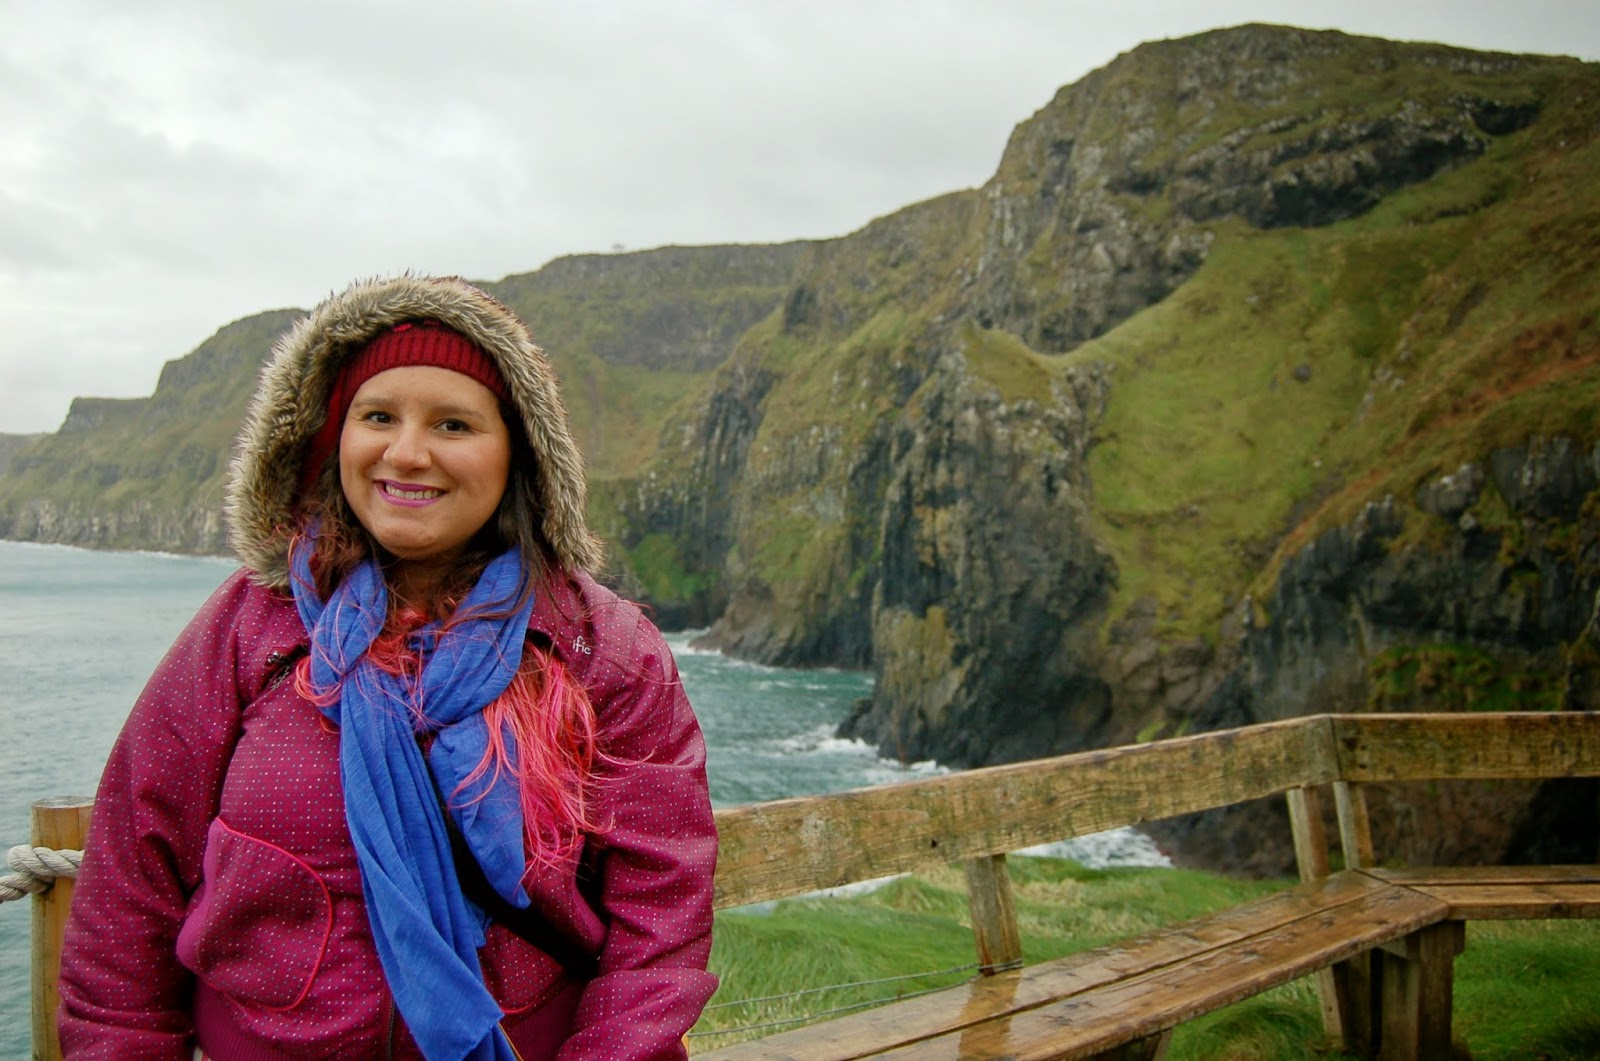 Carrick-a-Rede Bridge na irlanda do norte